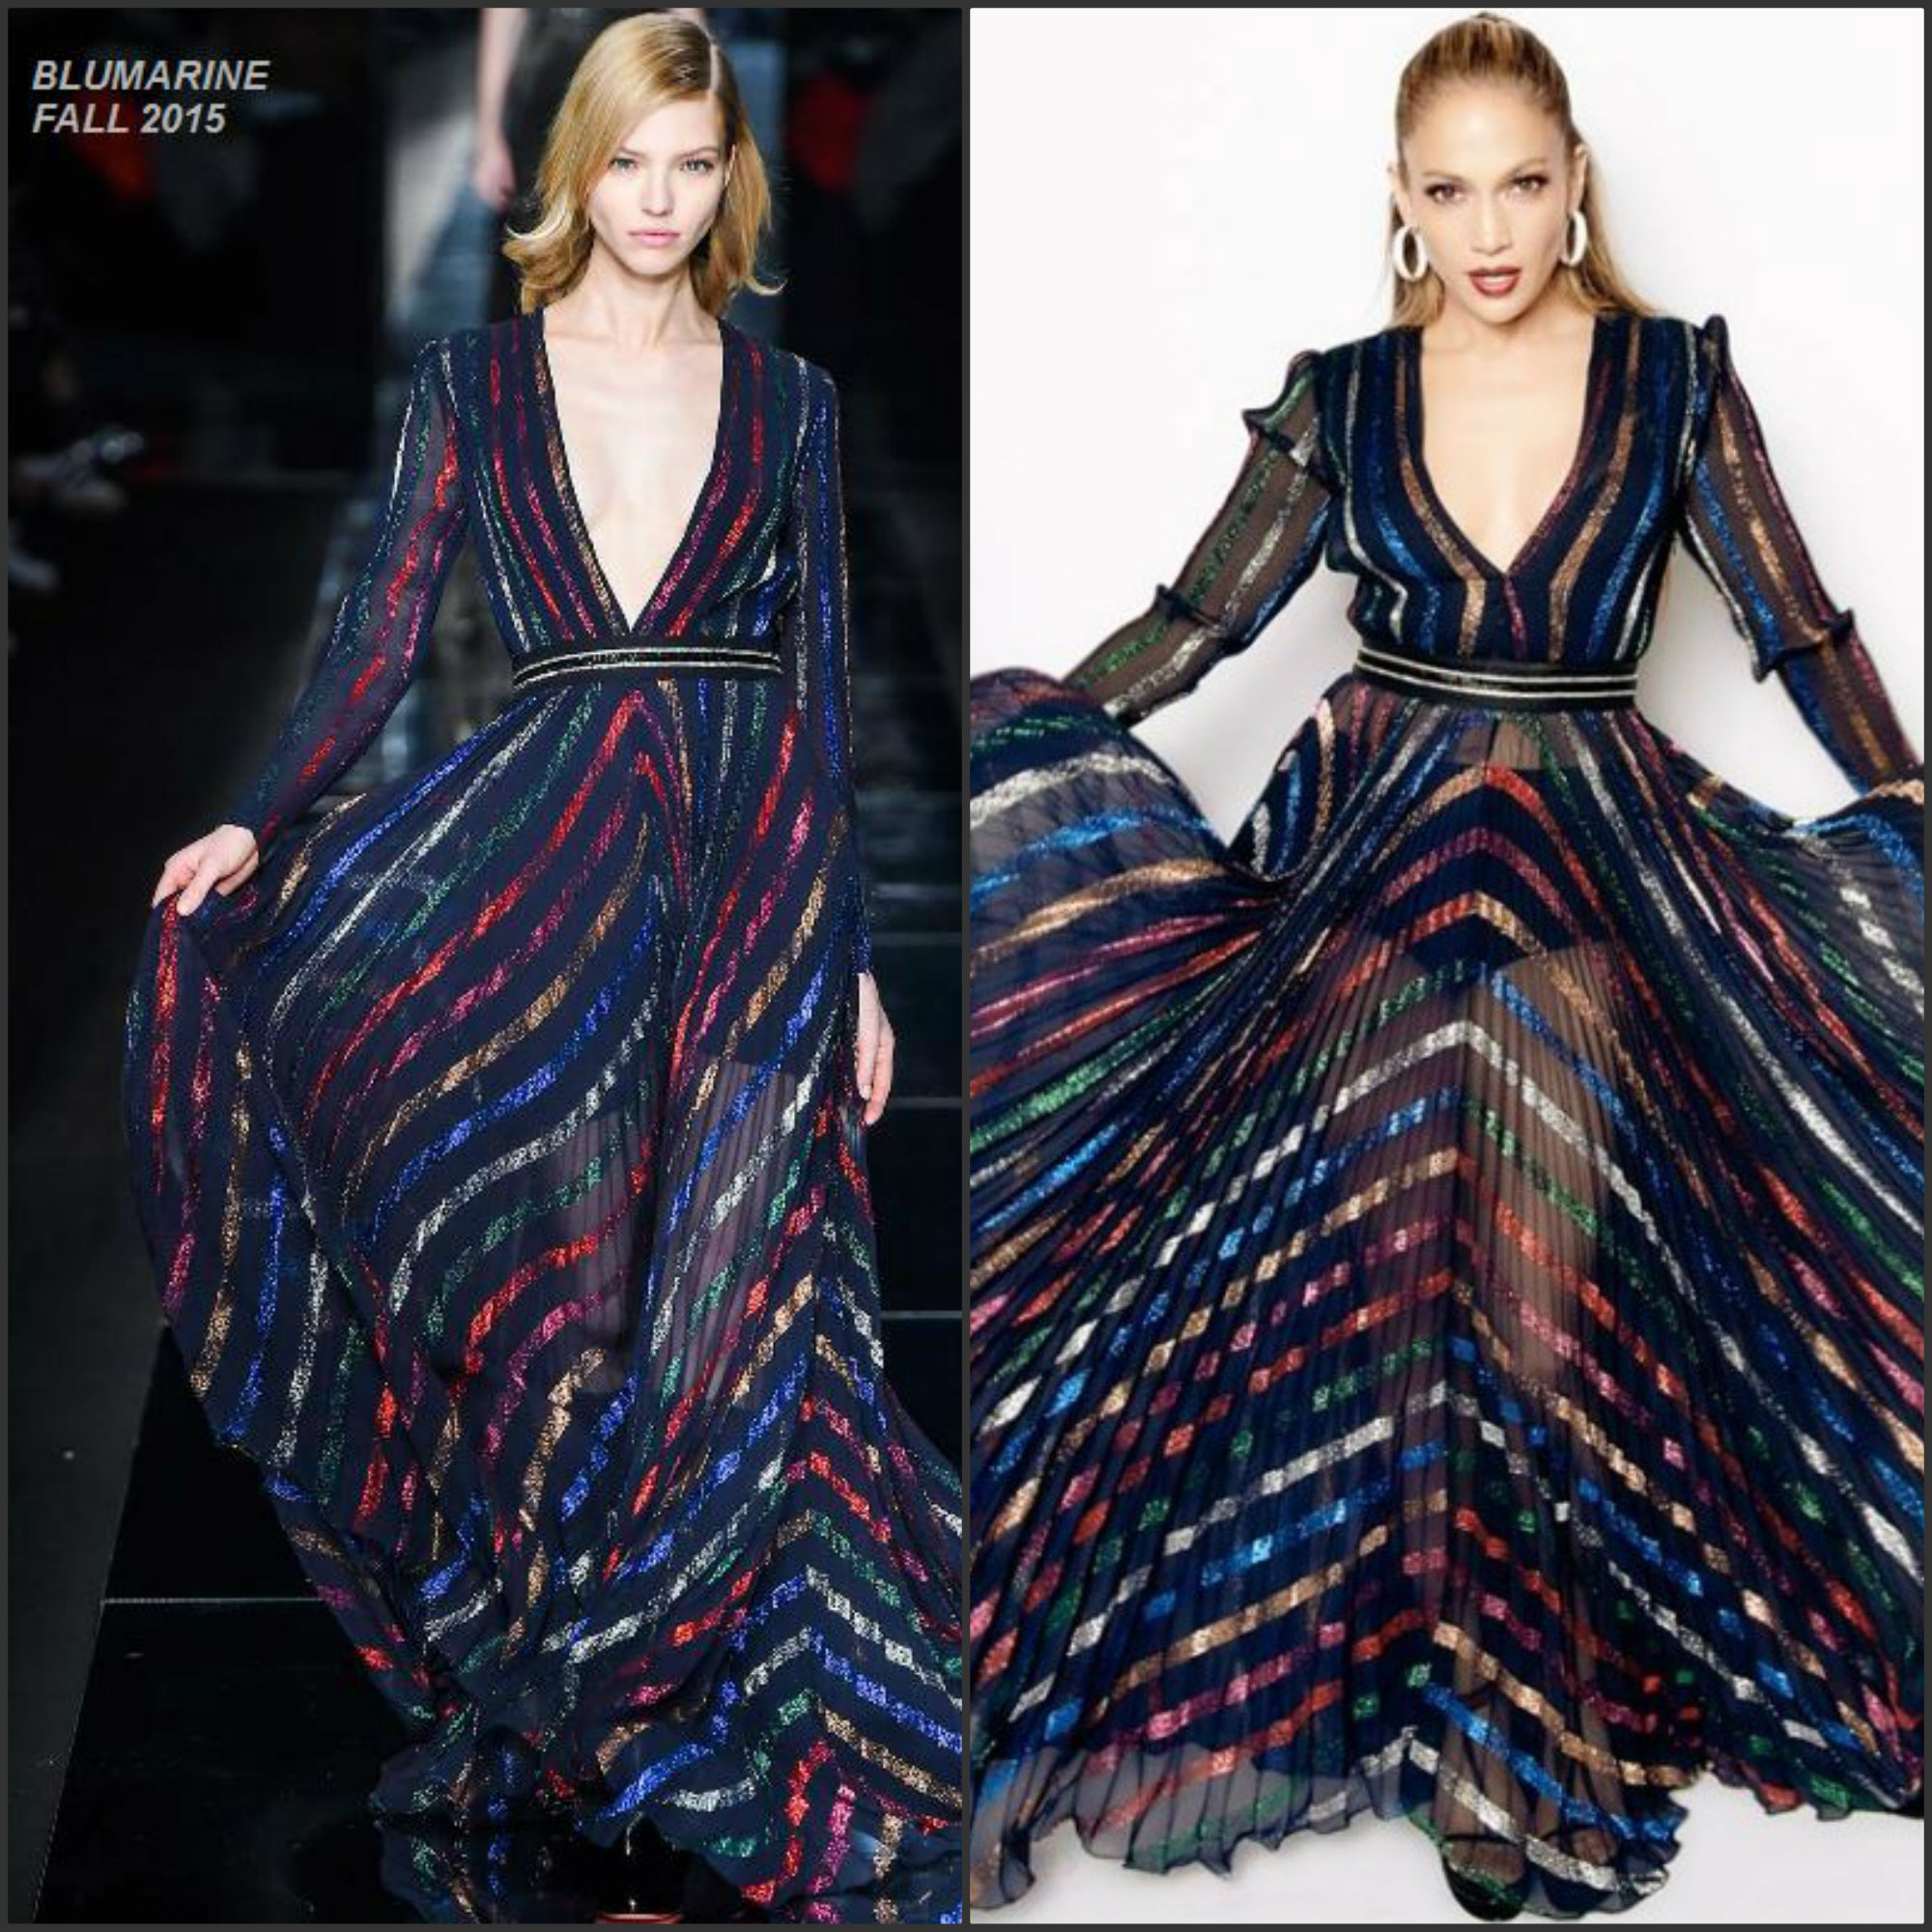 Jennifer-Lopez-in-Blumarine-American-Idol-Season-14